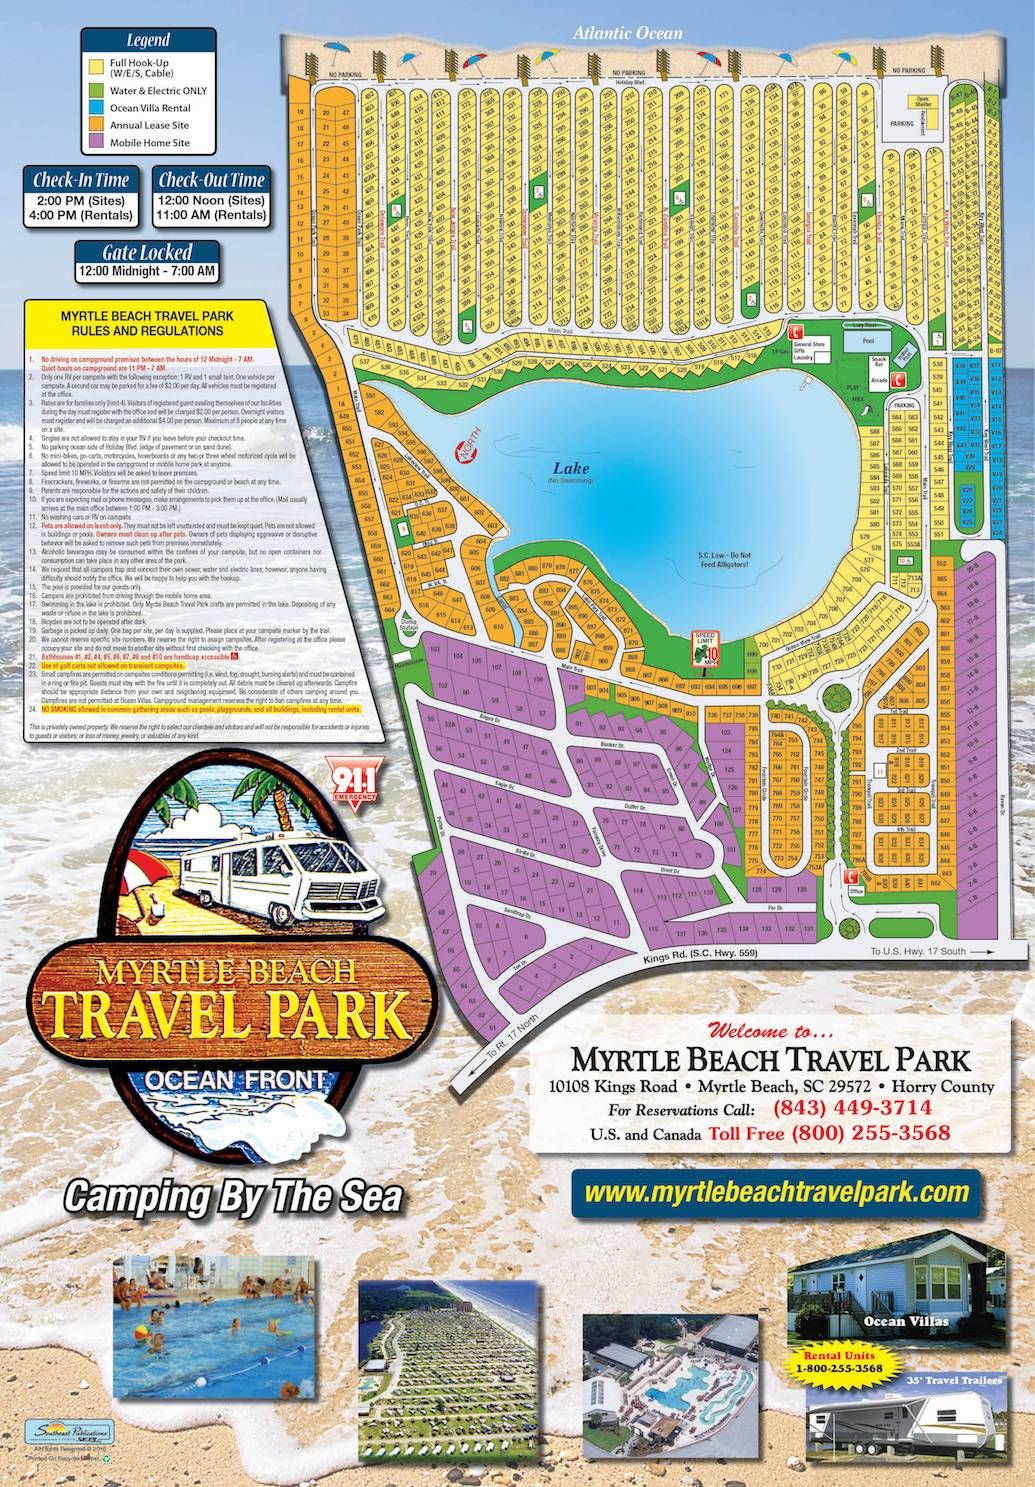 Maps Directions Myrtle Beach Travel